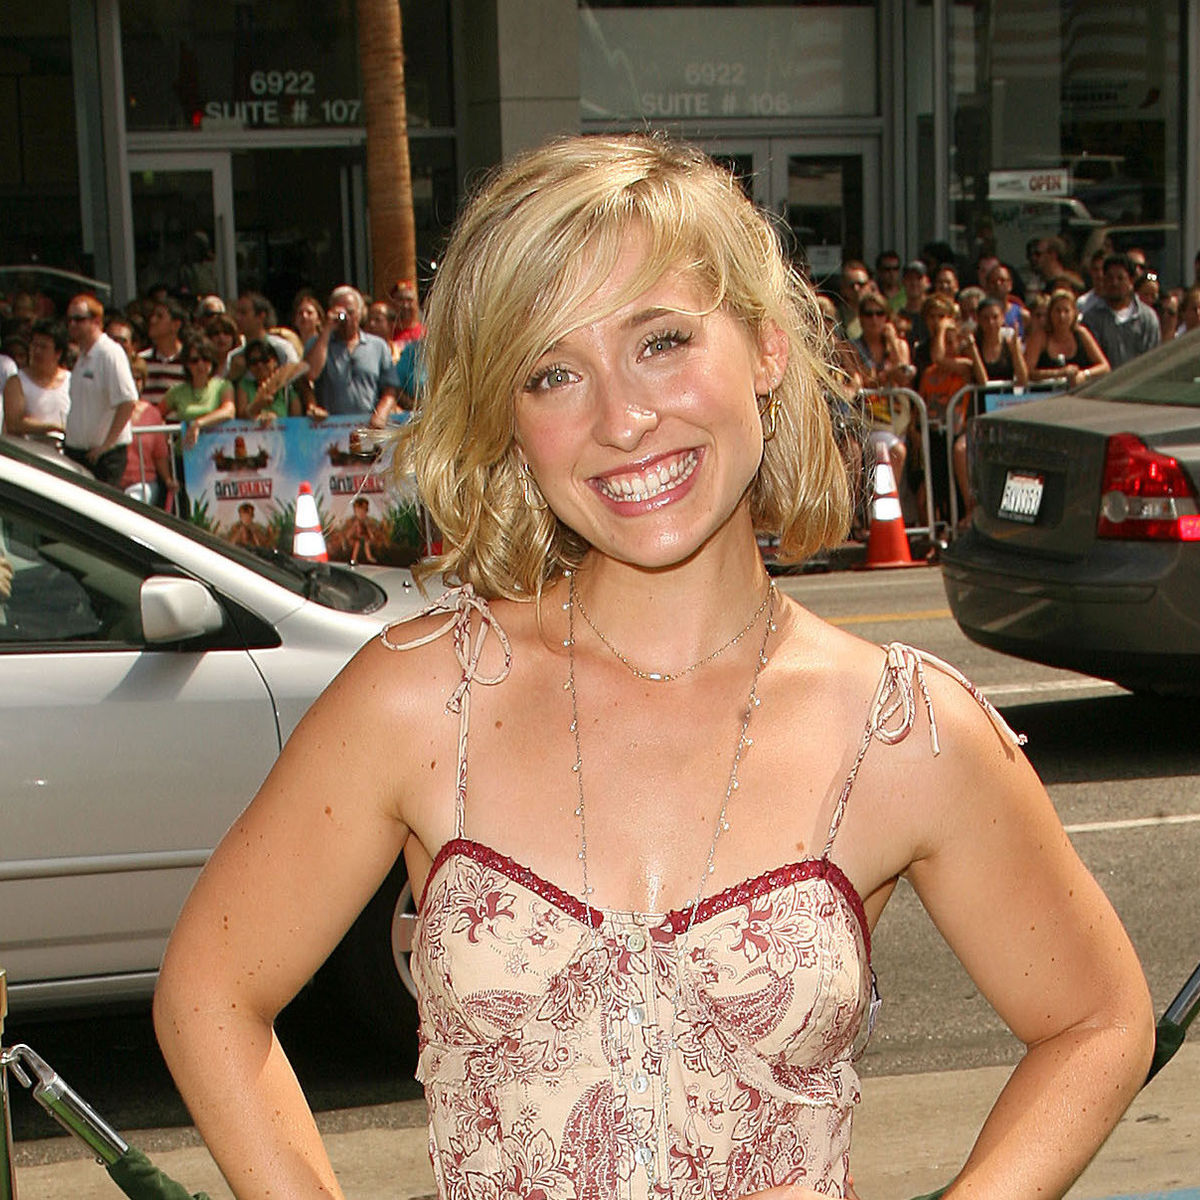 allison-mack-hero.jpg